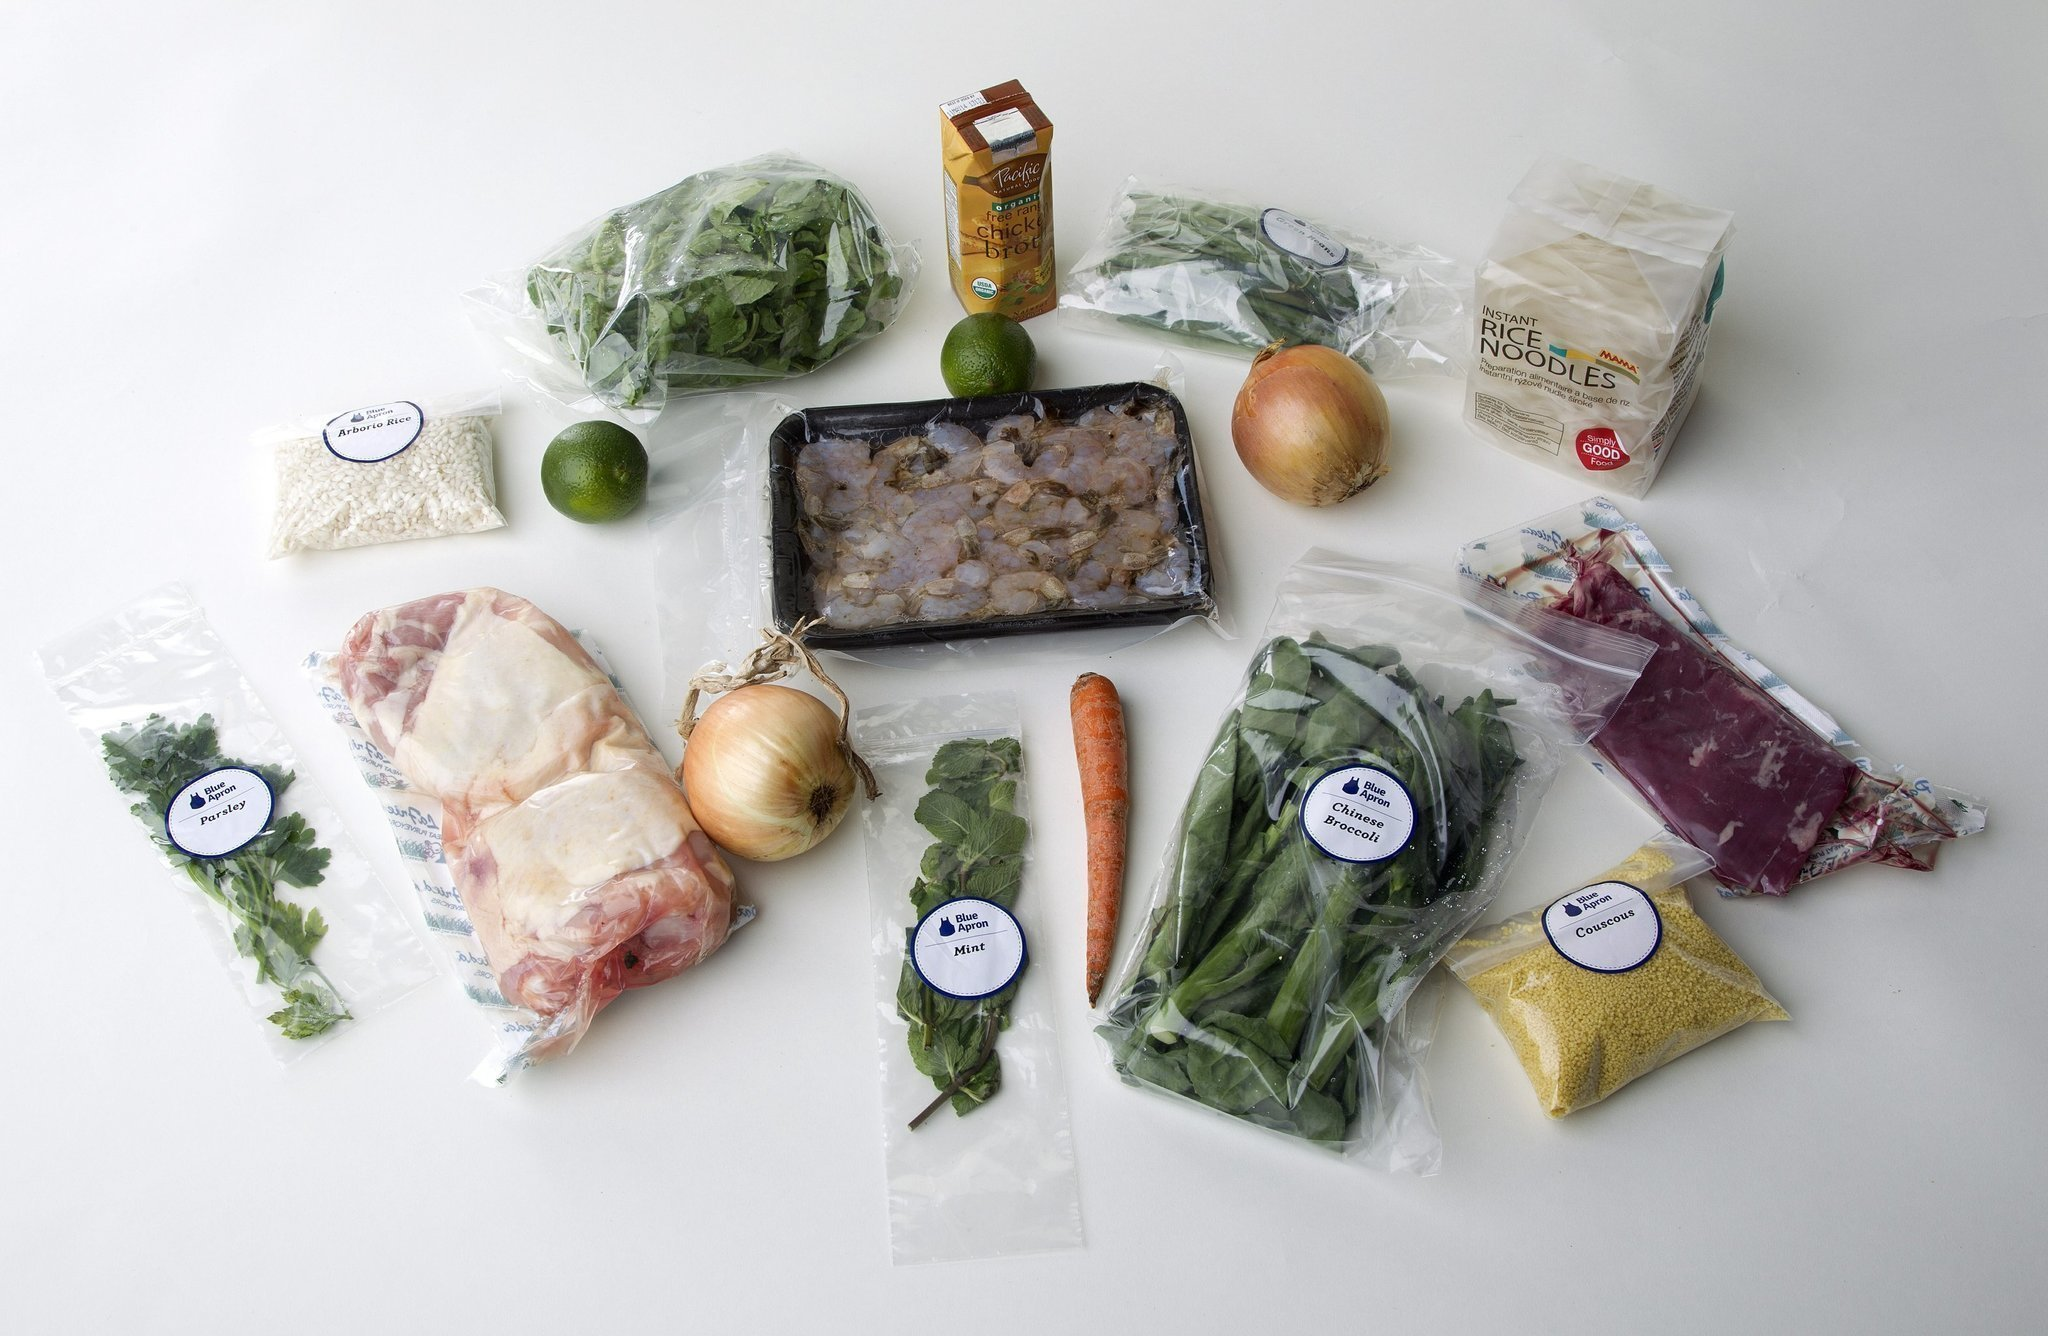 Blue apron target market - Would You Use A Make It At Home Meal Kit The San Diego Union Tribune